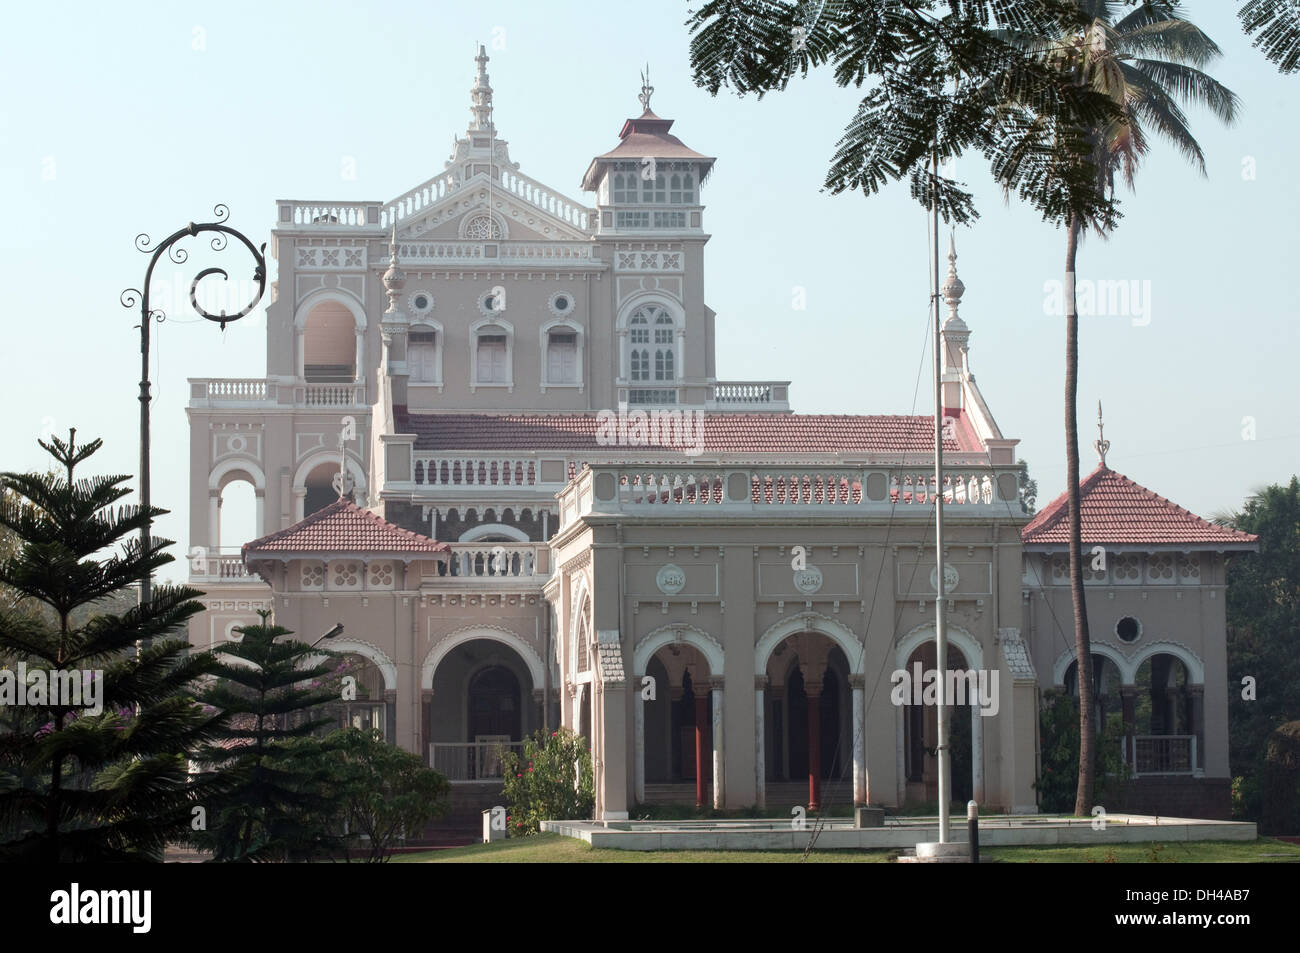 Aga France Aga Khan Palace Stock Photos And Aga Khan Palace Stock